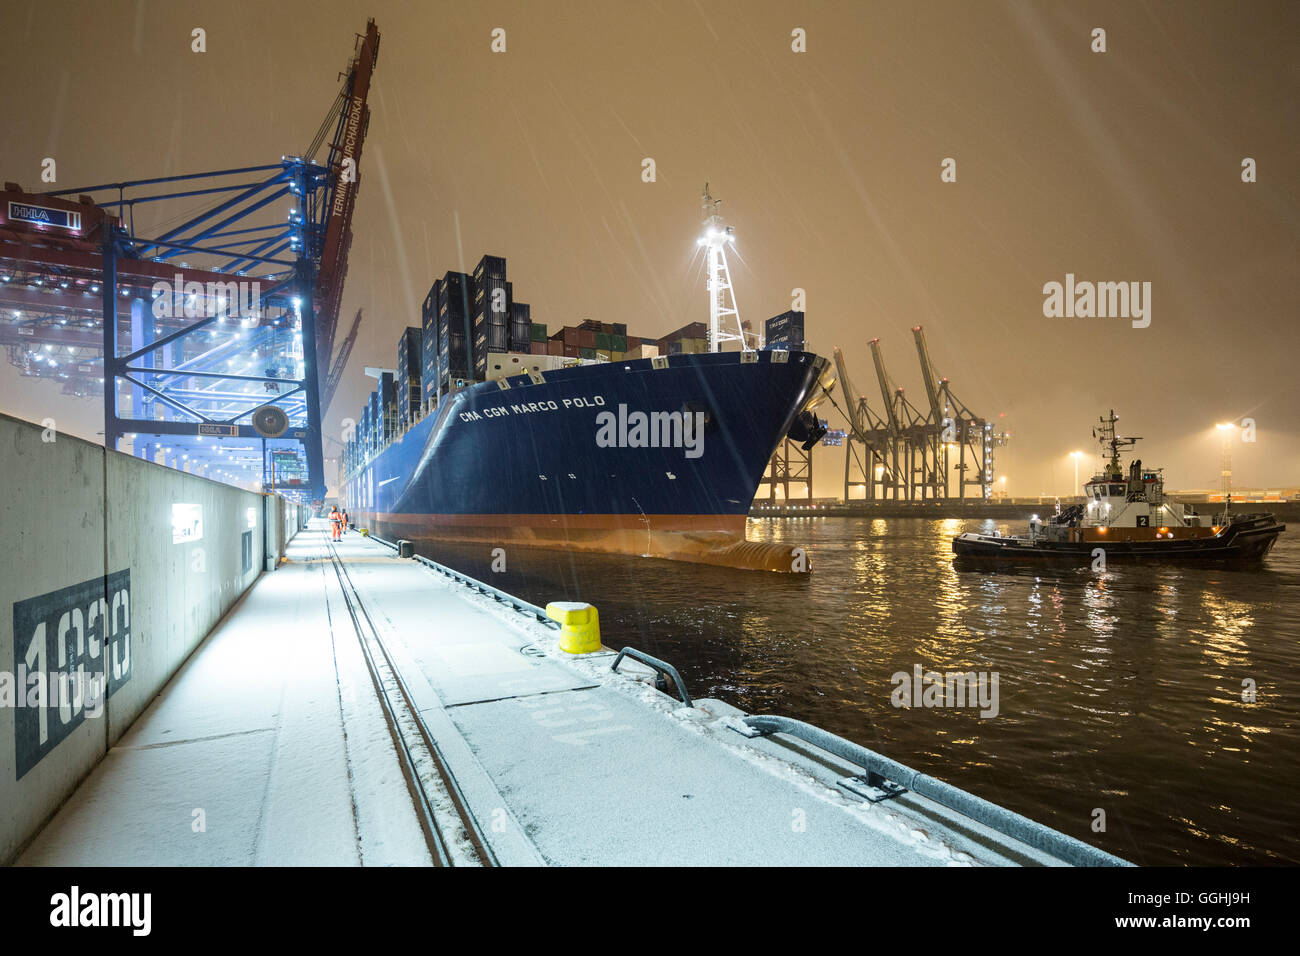 Docking maneuver of the CMA CGM Marco Polo in the Container Terminal Burchardkai in Hamburg, Germany - Stock Image